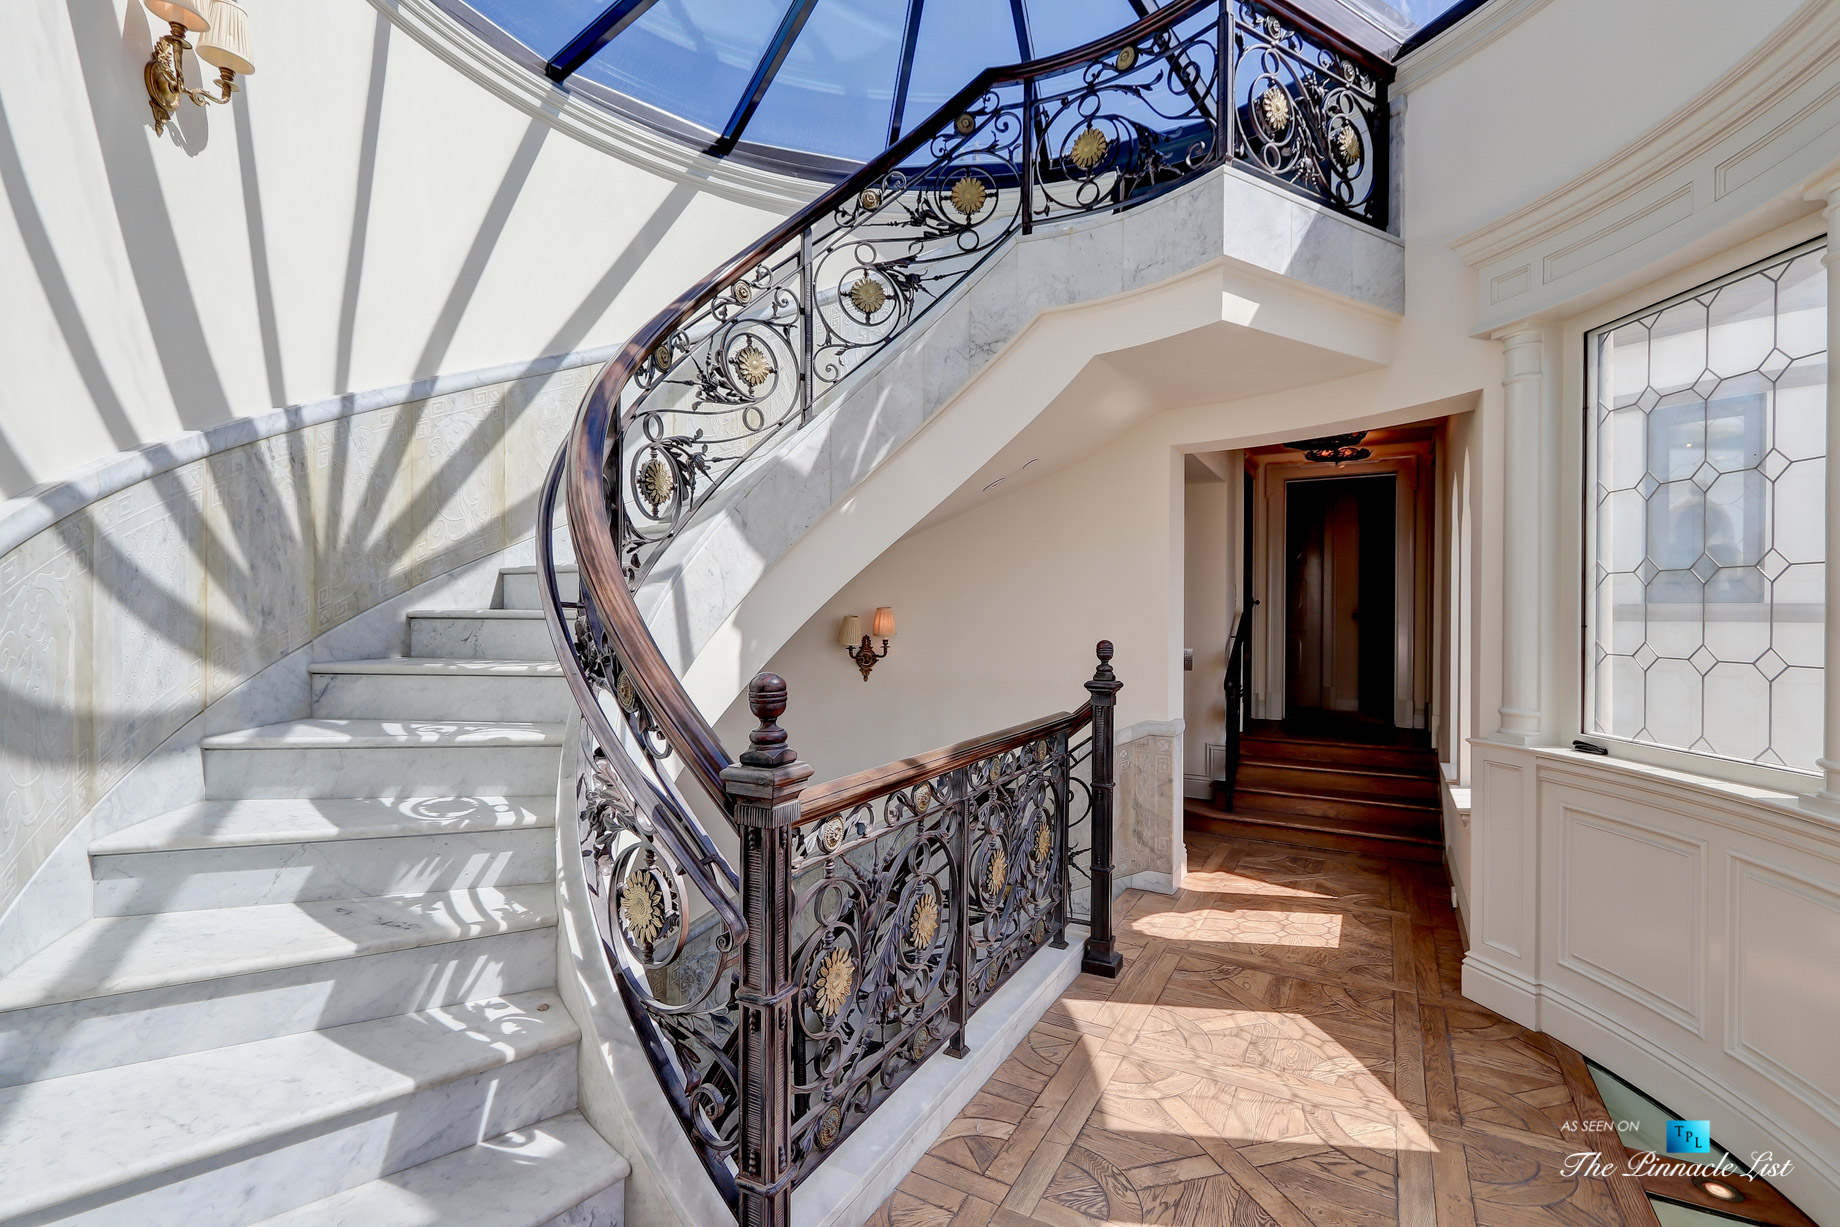 2806 The Strand, Hermosa Beach, CA, USA - Stairs to Rooftop Deck - Luxury Real Estate - Oceanfront Home